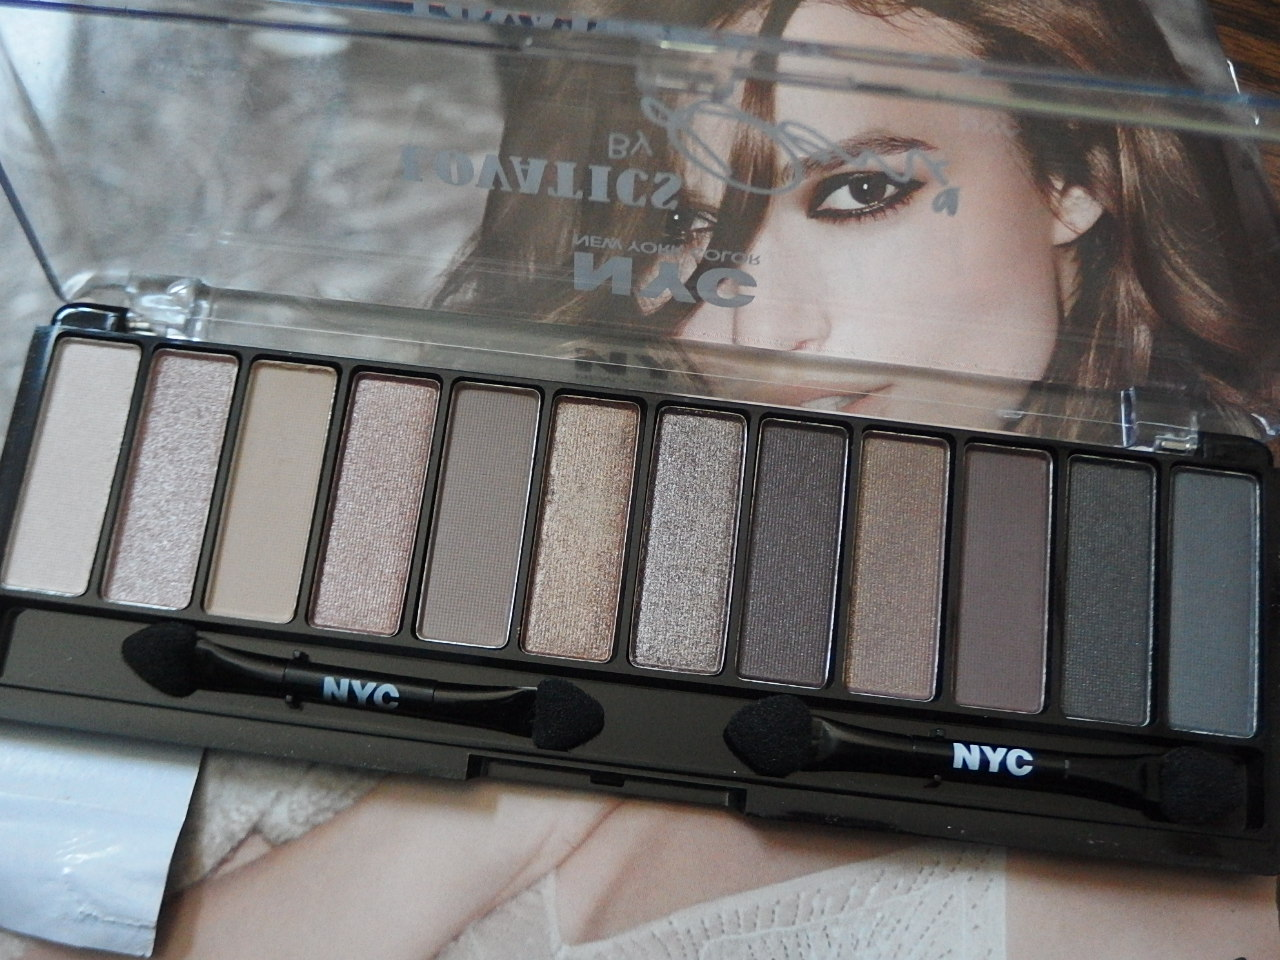 Lovatics By Demi Eyeshadow Palette – Hey Sharonoox